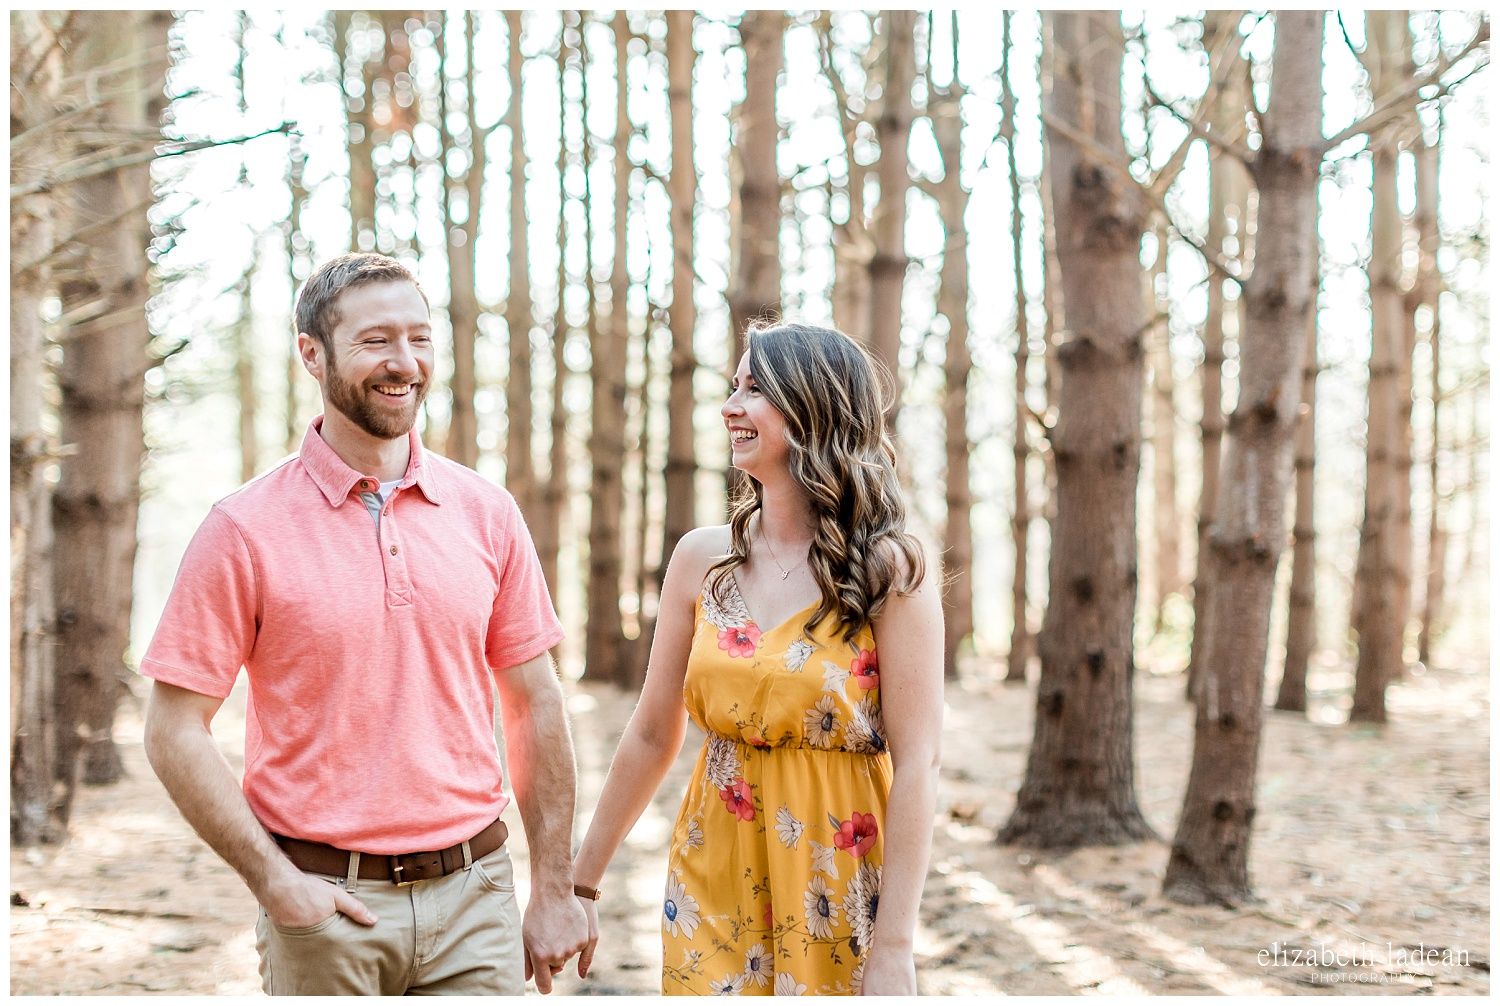 Kansas-City-Engagement-Photographer-K+D2018-elizabeth-ladean-photography-photo-_6615.jpg